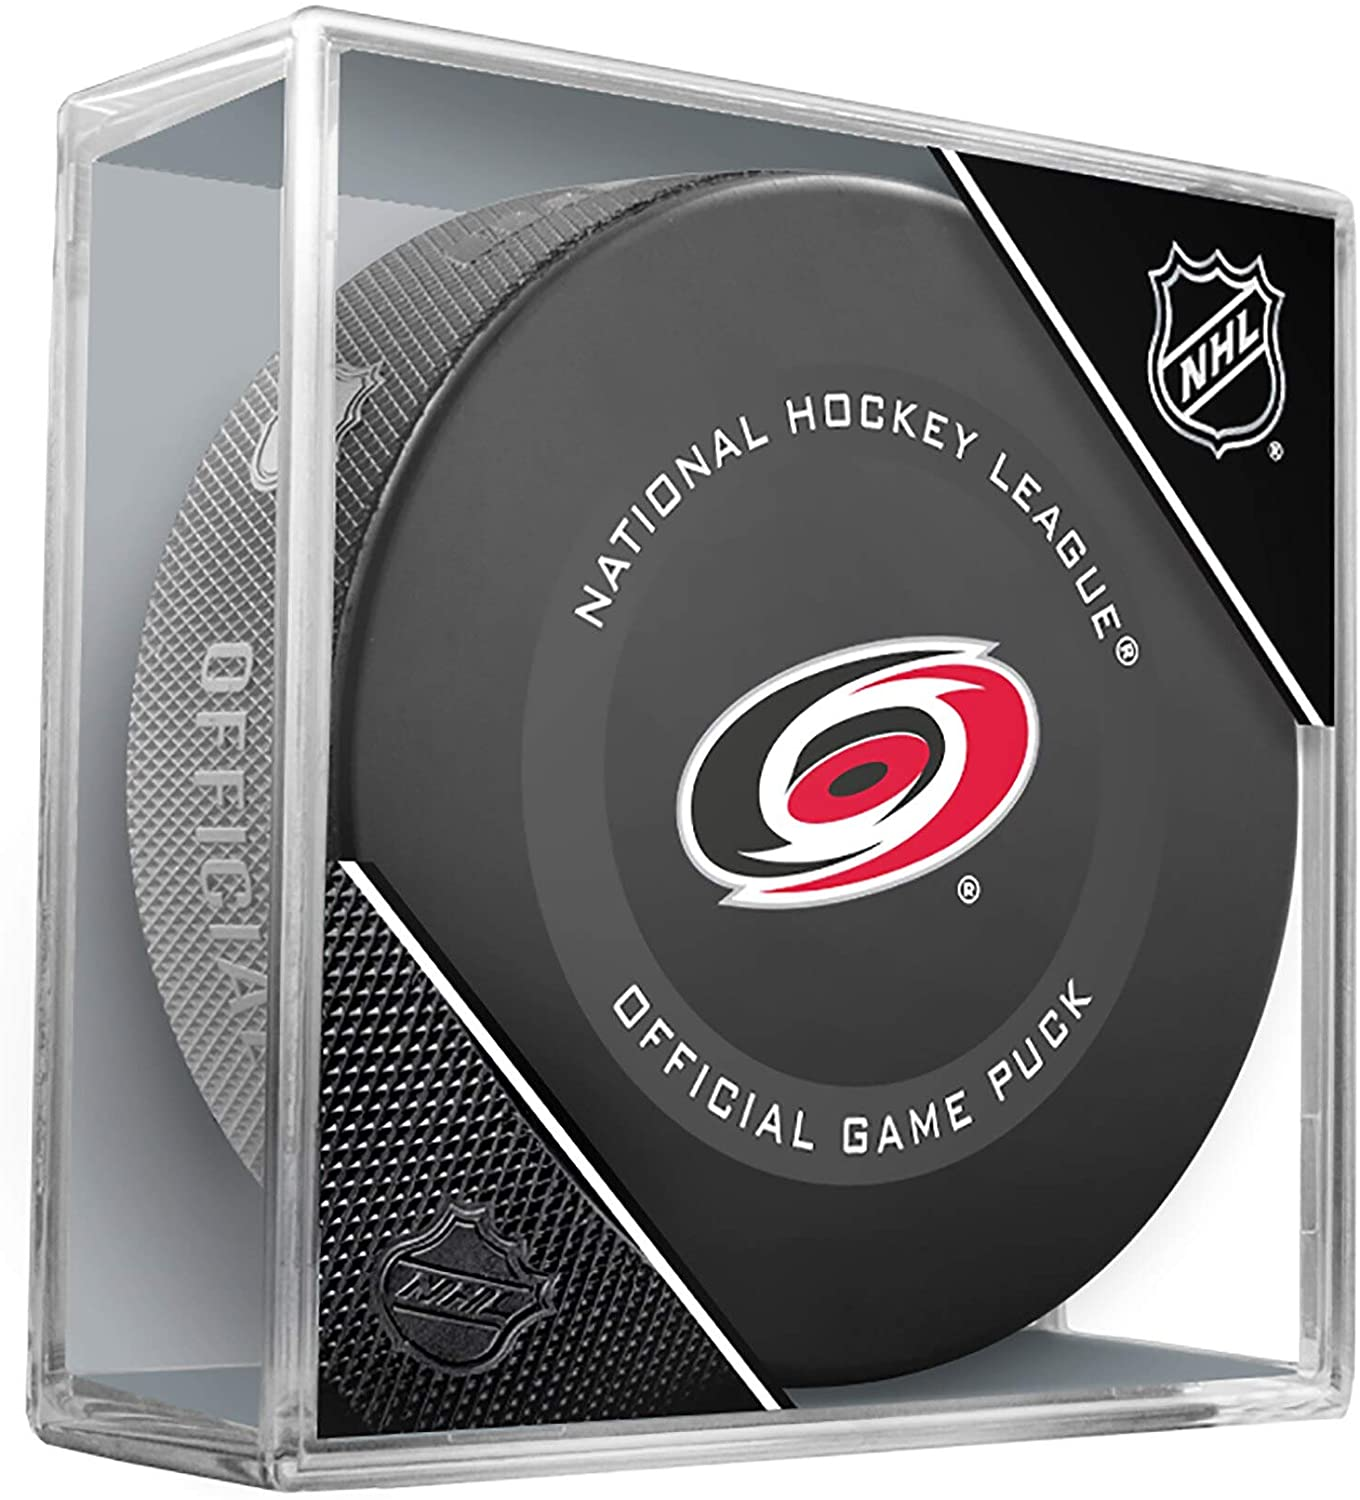 Carolina Hurricanes Official Game Hockey Puck with Holder